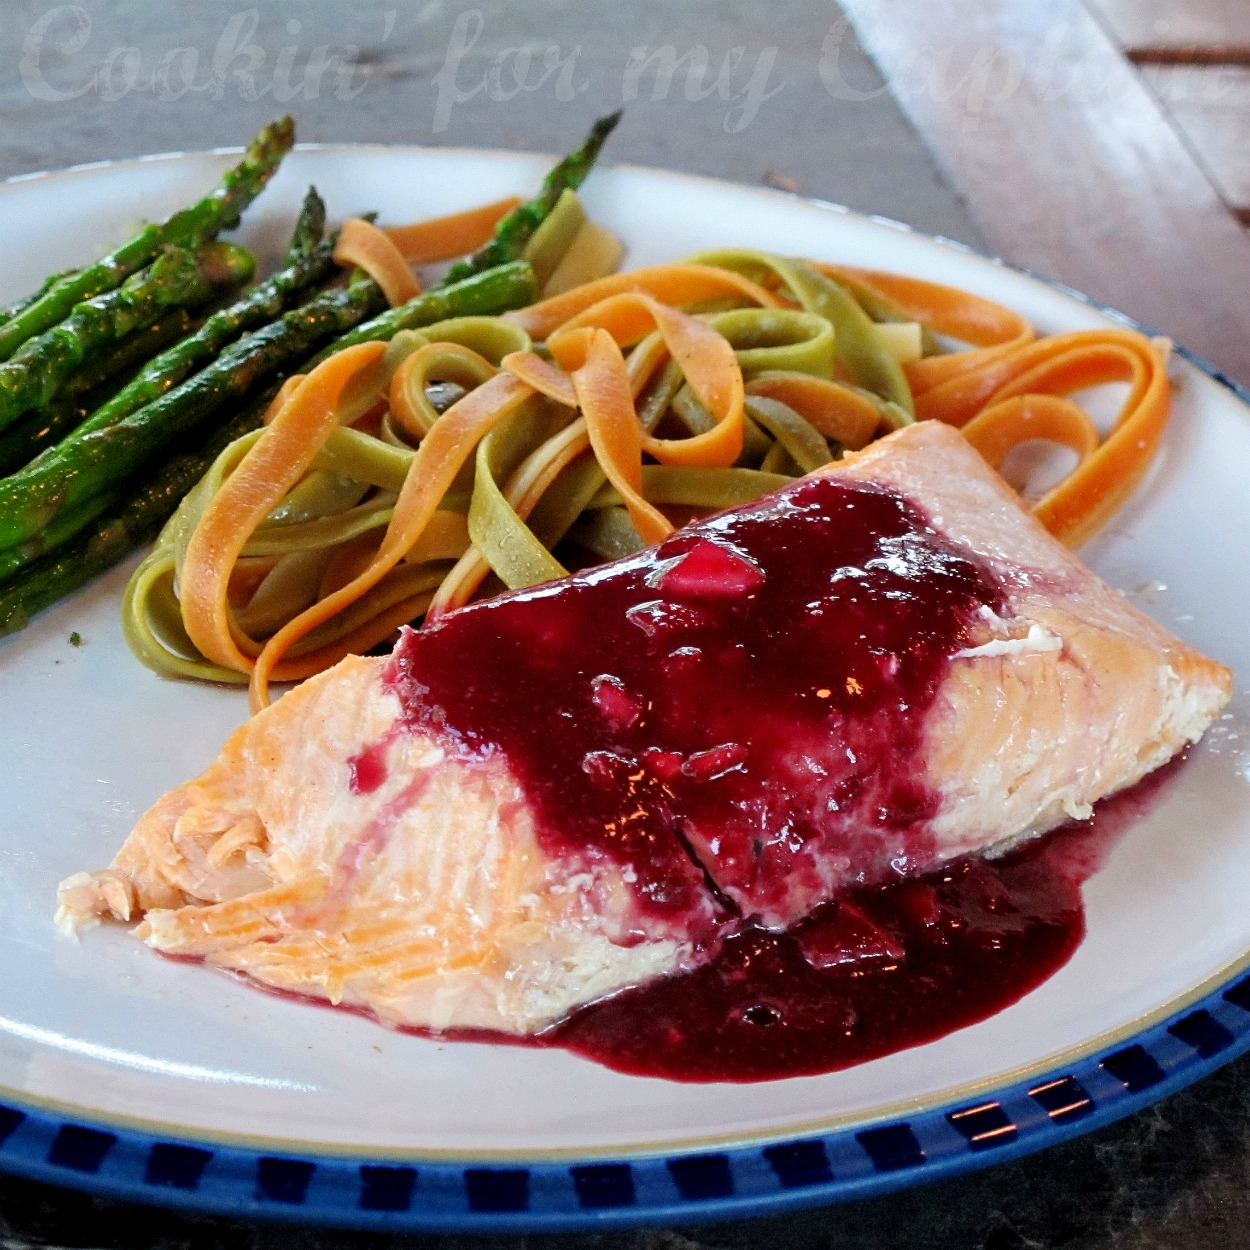 Cookin' for my Captain: Grilled Salmon with Blueberry Sauce